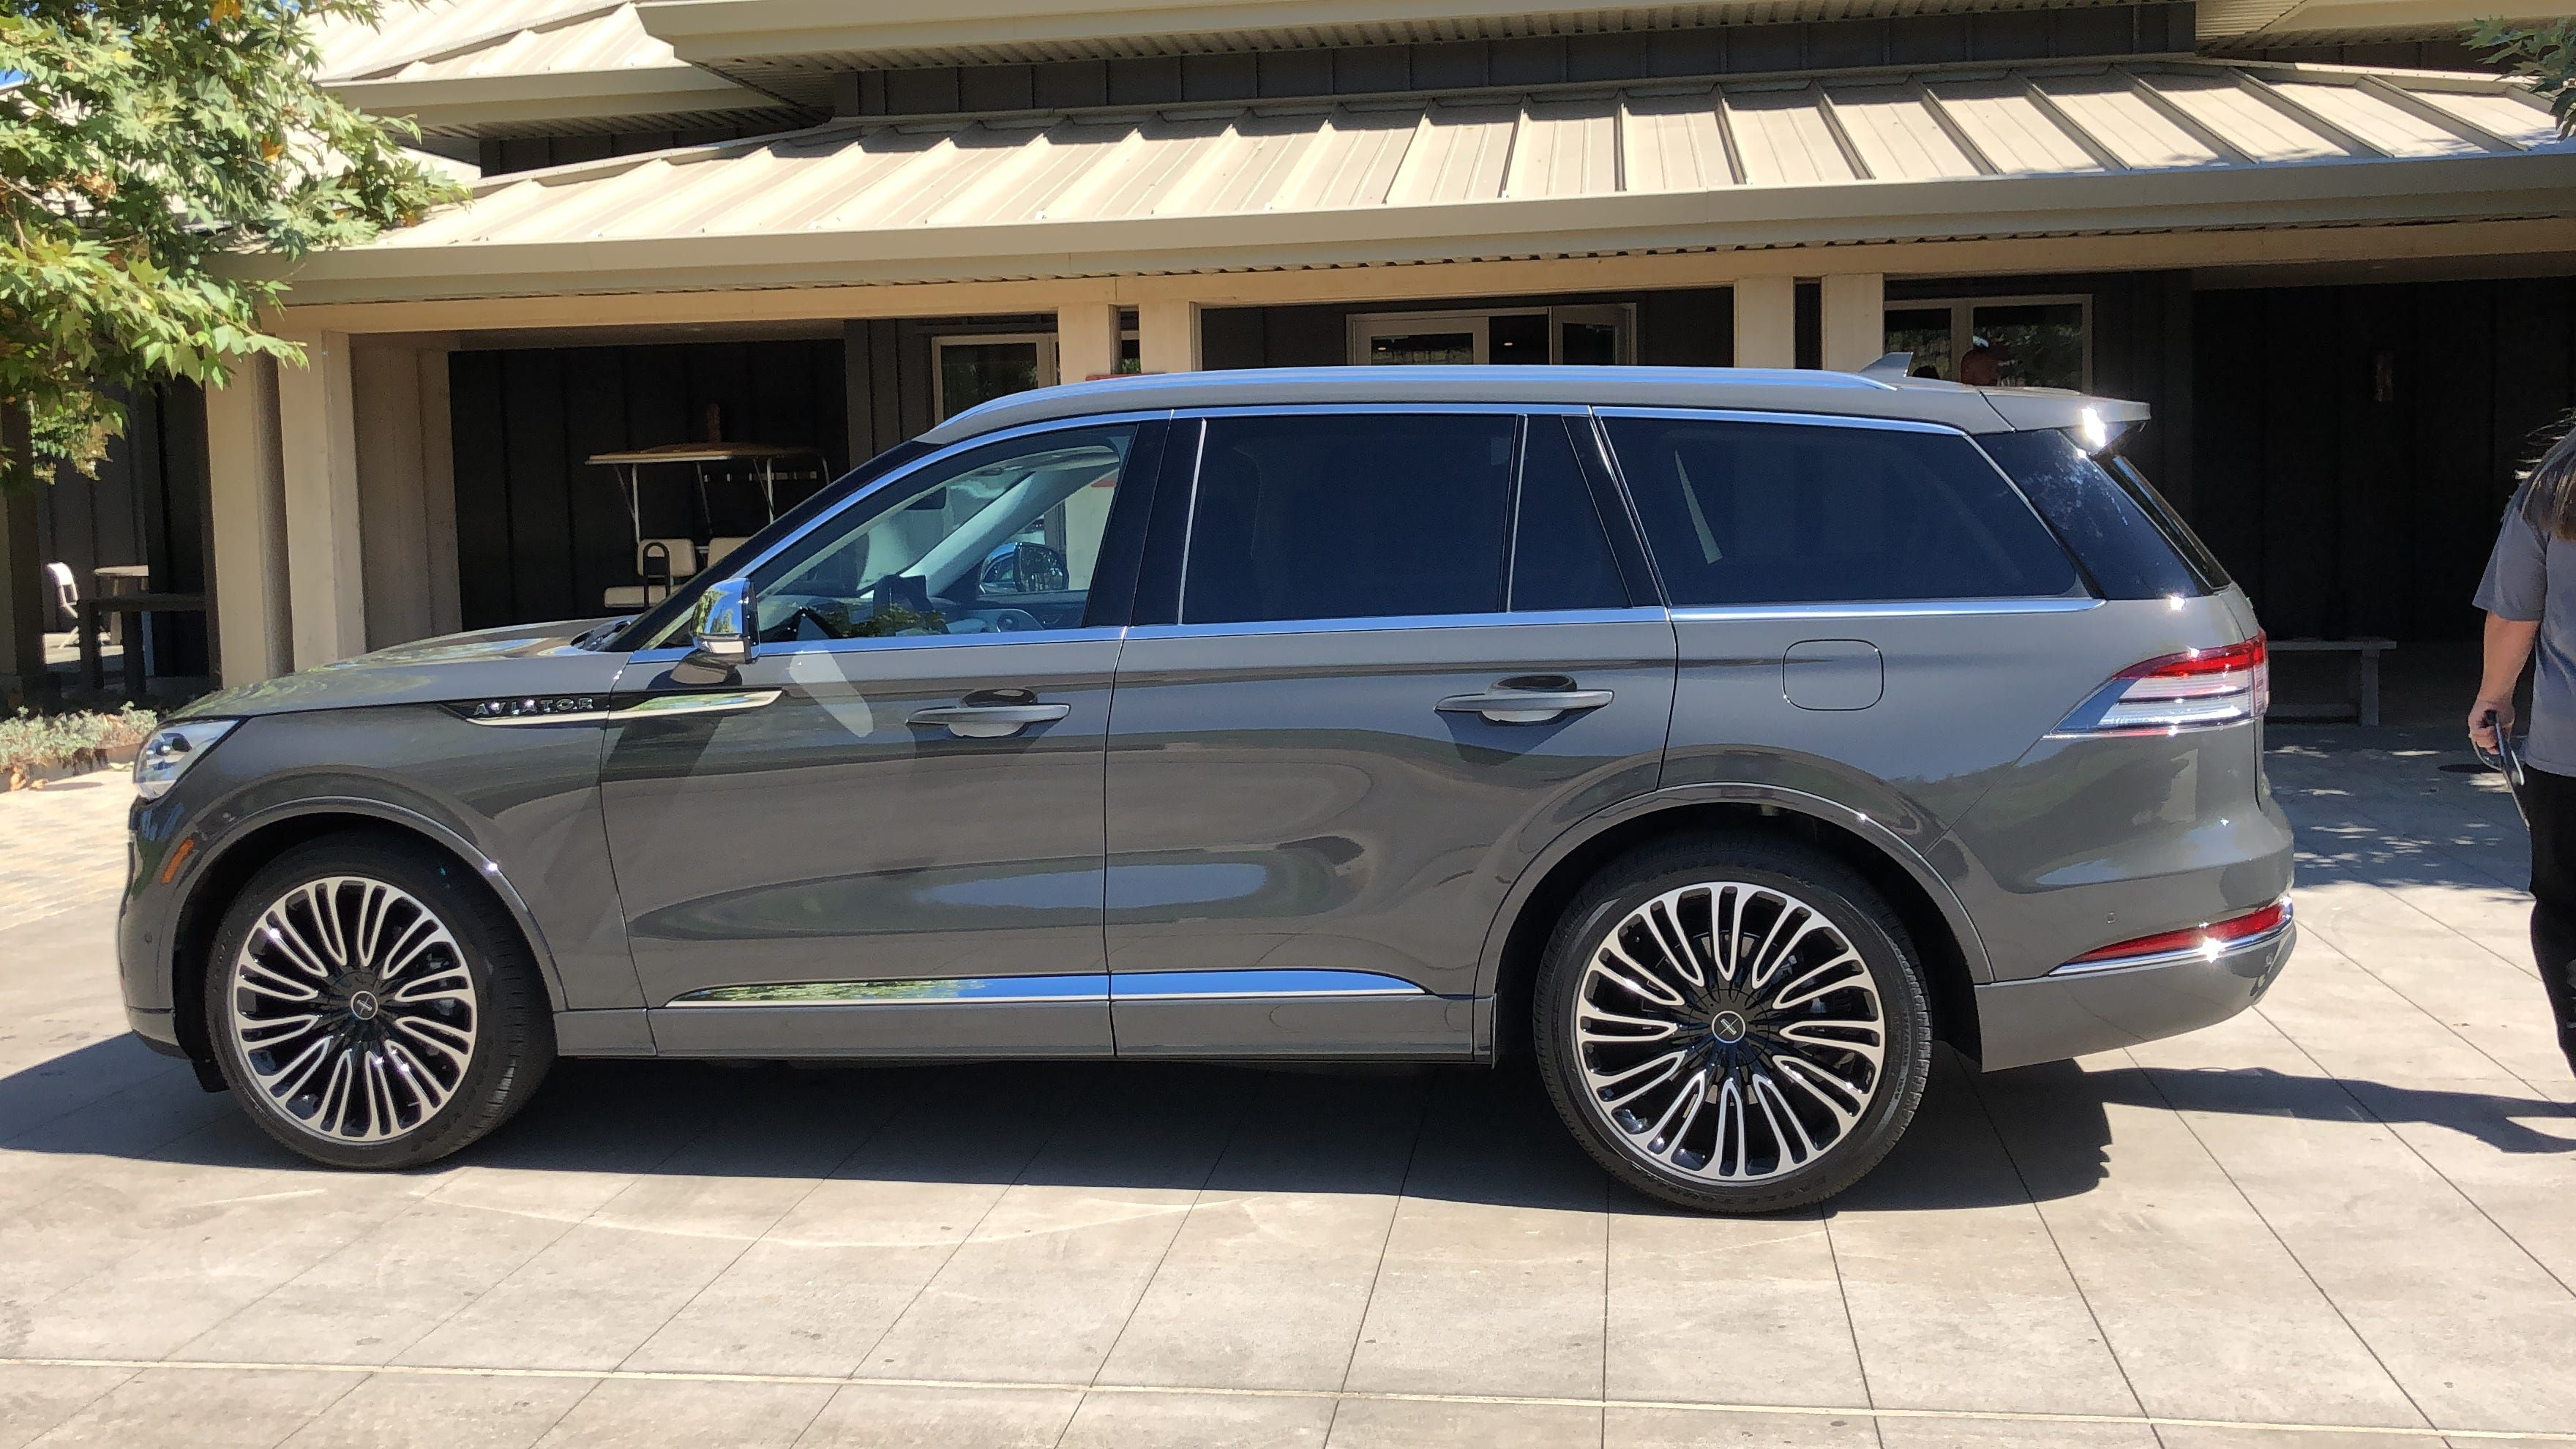 2020 Lincoln Aviator Suv Raises The Bar For Luxury Tech And Features With Images Lincoln Aviator Suv New Suv